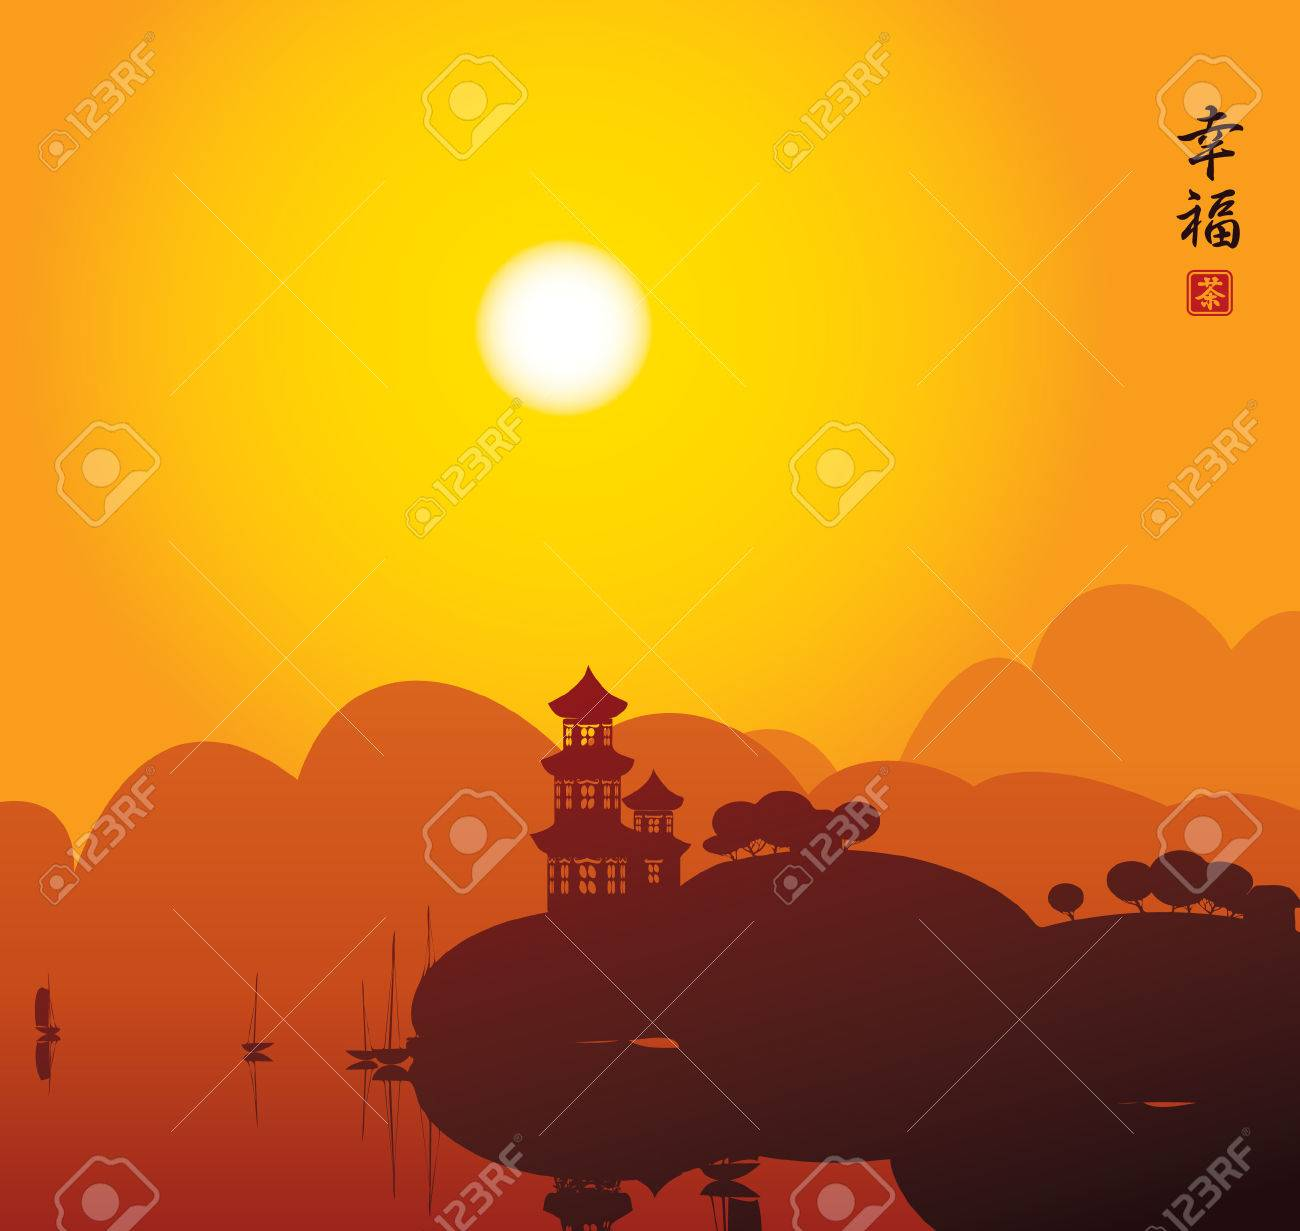 Chinese village on the lake with pagoda and sun Character happiness - 28909985